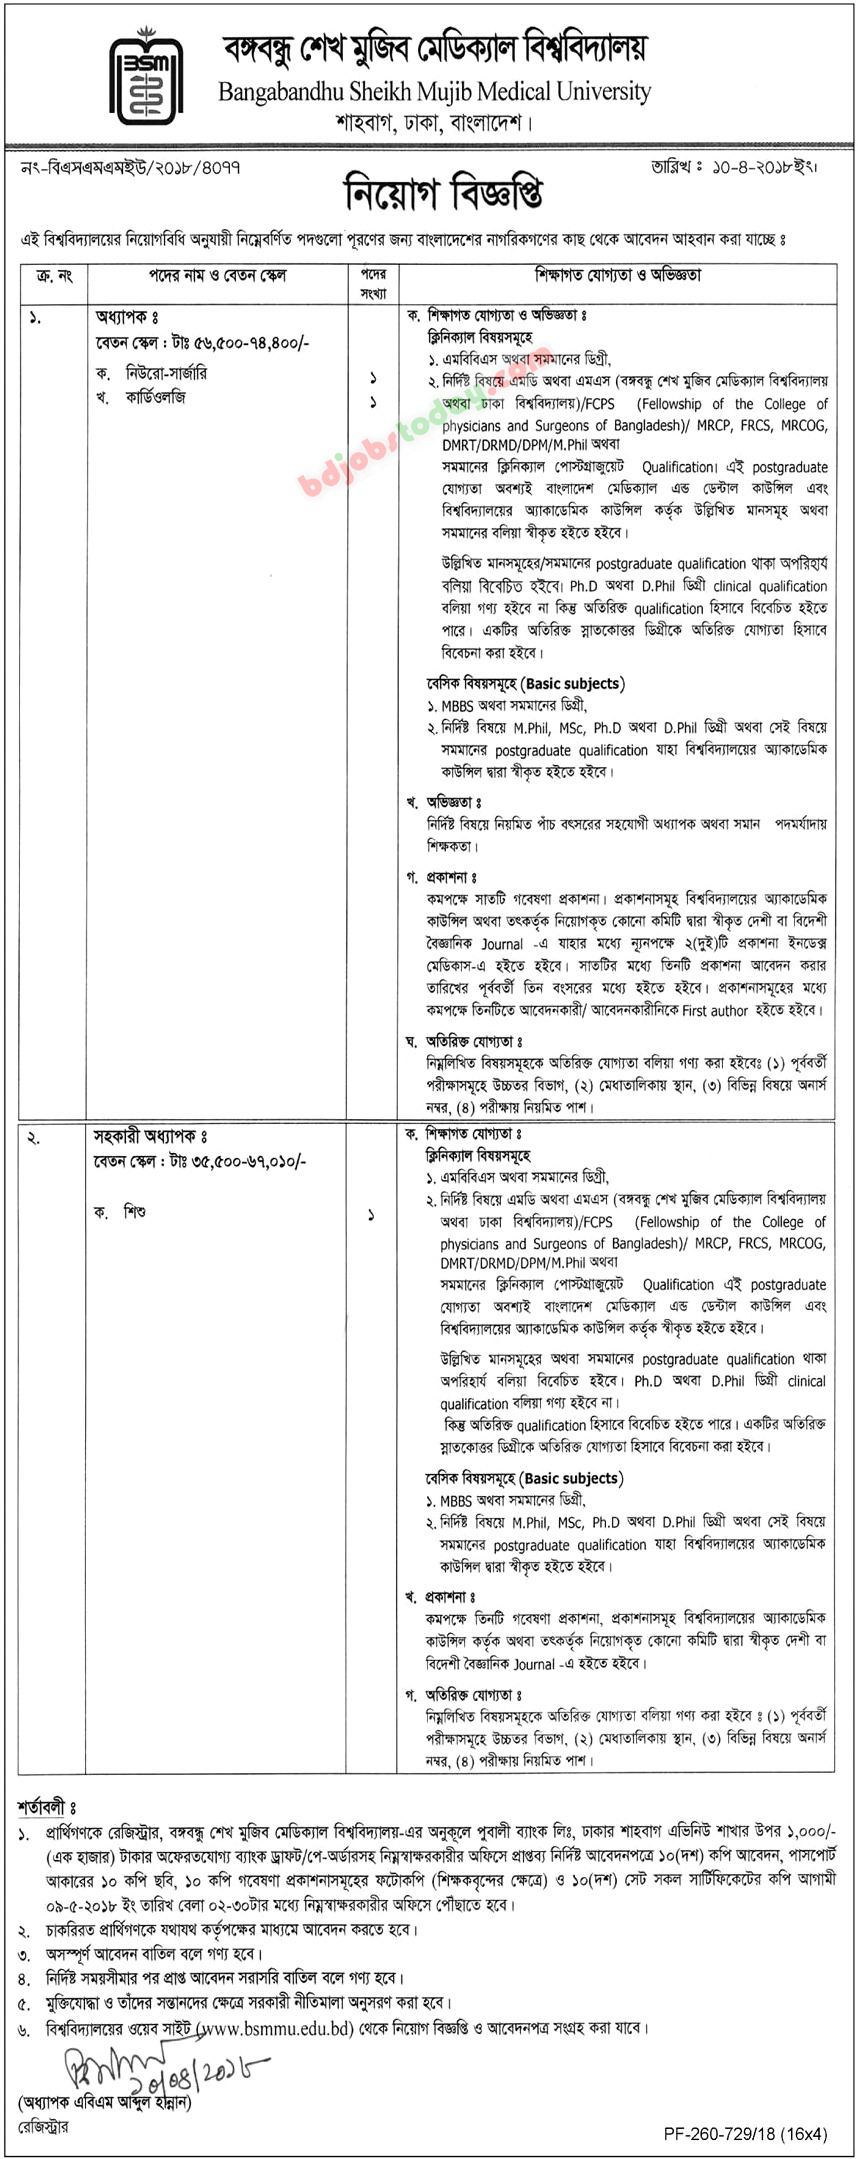 Bangabandhu Sheikh Mujib Medical University -BSMMU jobs